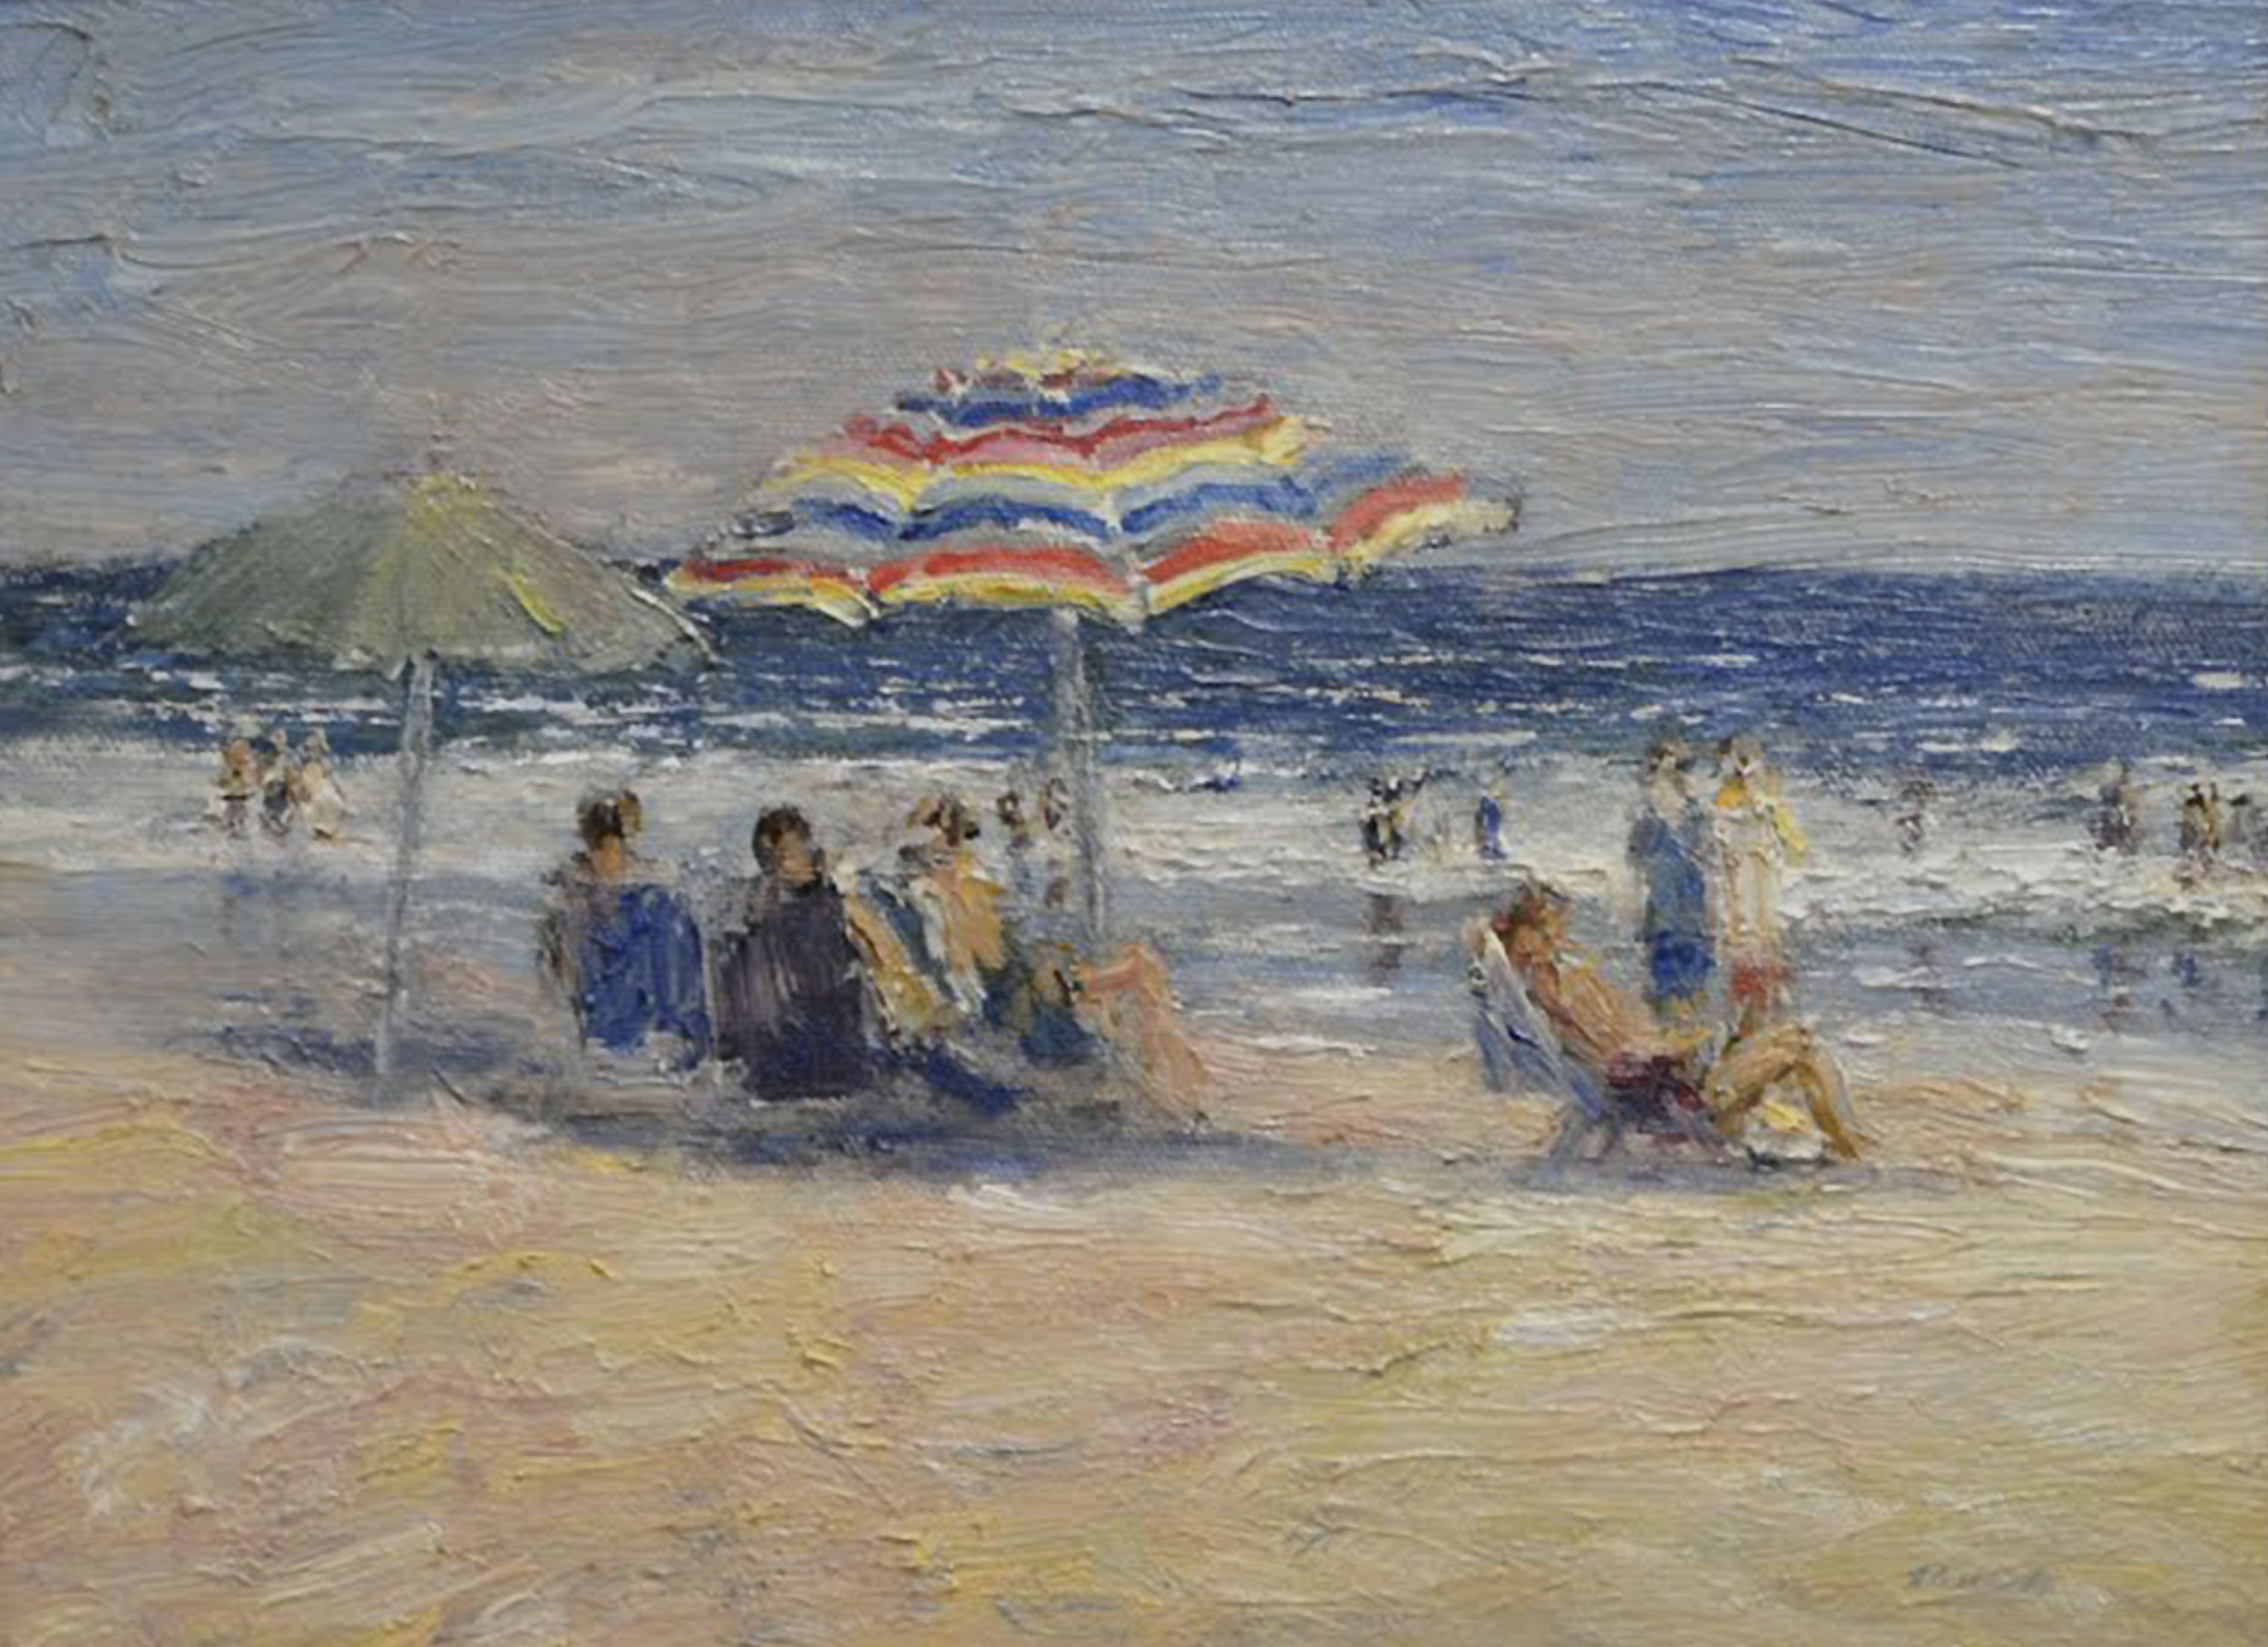 Striped Umbrella, Oil, 9 x 12. Available at Rehs Galleries.